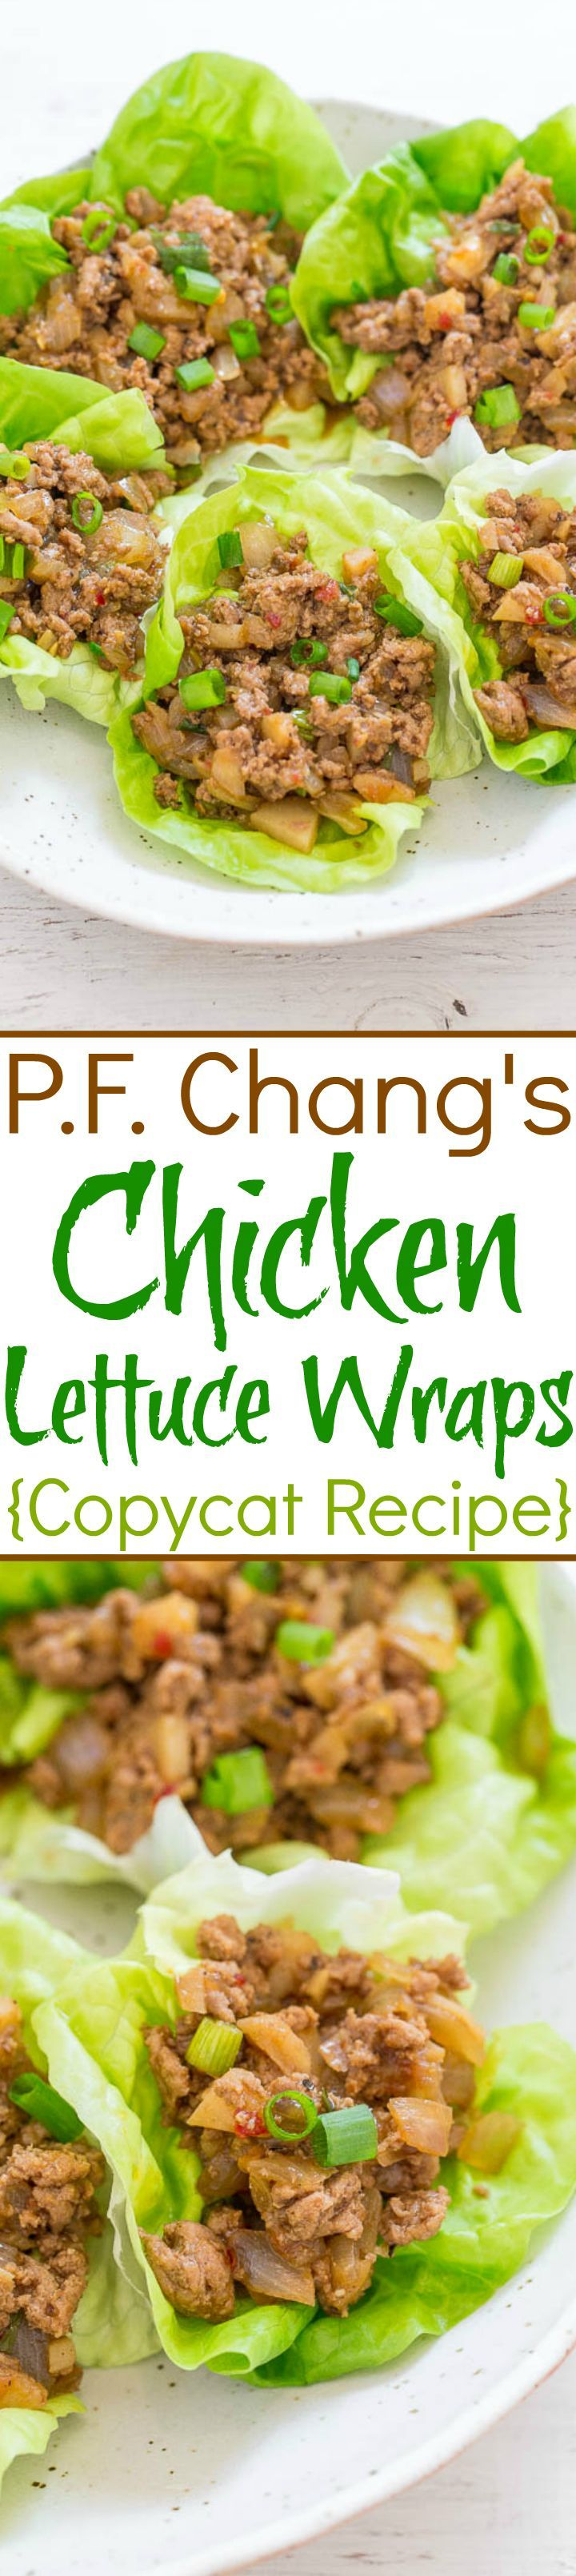 I don't go to P.F. Chang's that often but when I do someone in my group or family will order their chicken lettuce wraps because they're just so good. Now you can skip the restaurant version and make your own in 20 minutes. And I promise you this homemade version tastes better. We inhaled these and …